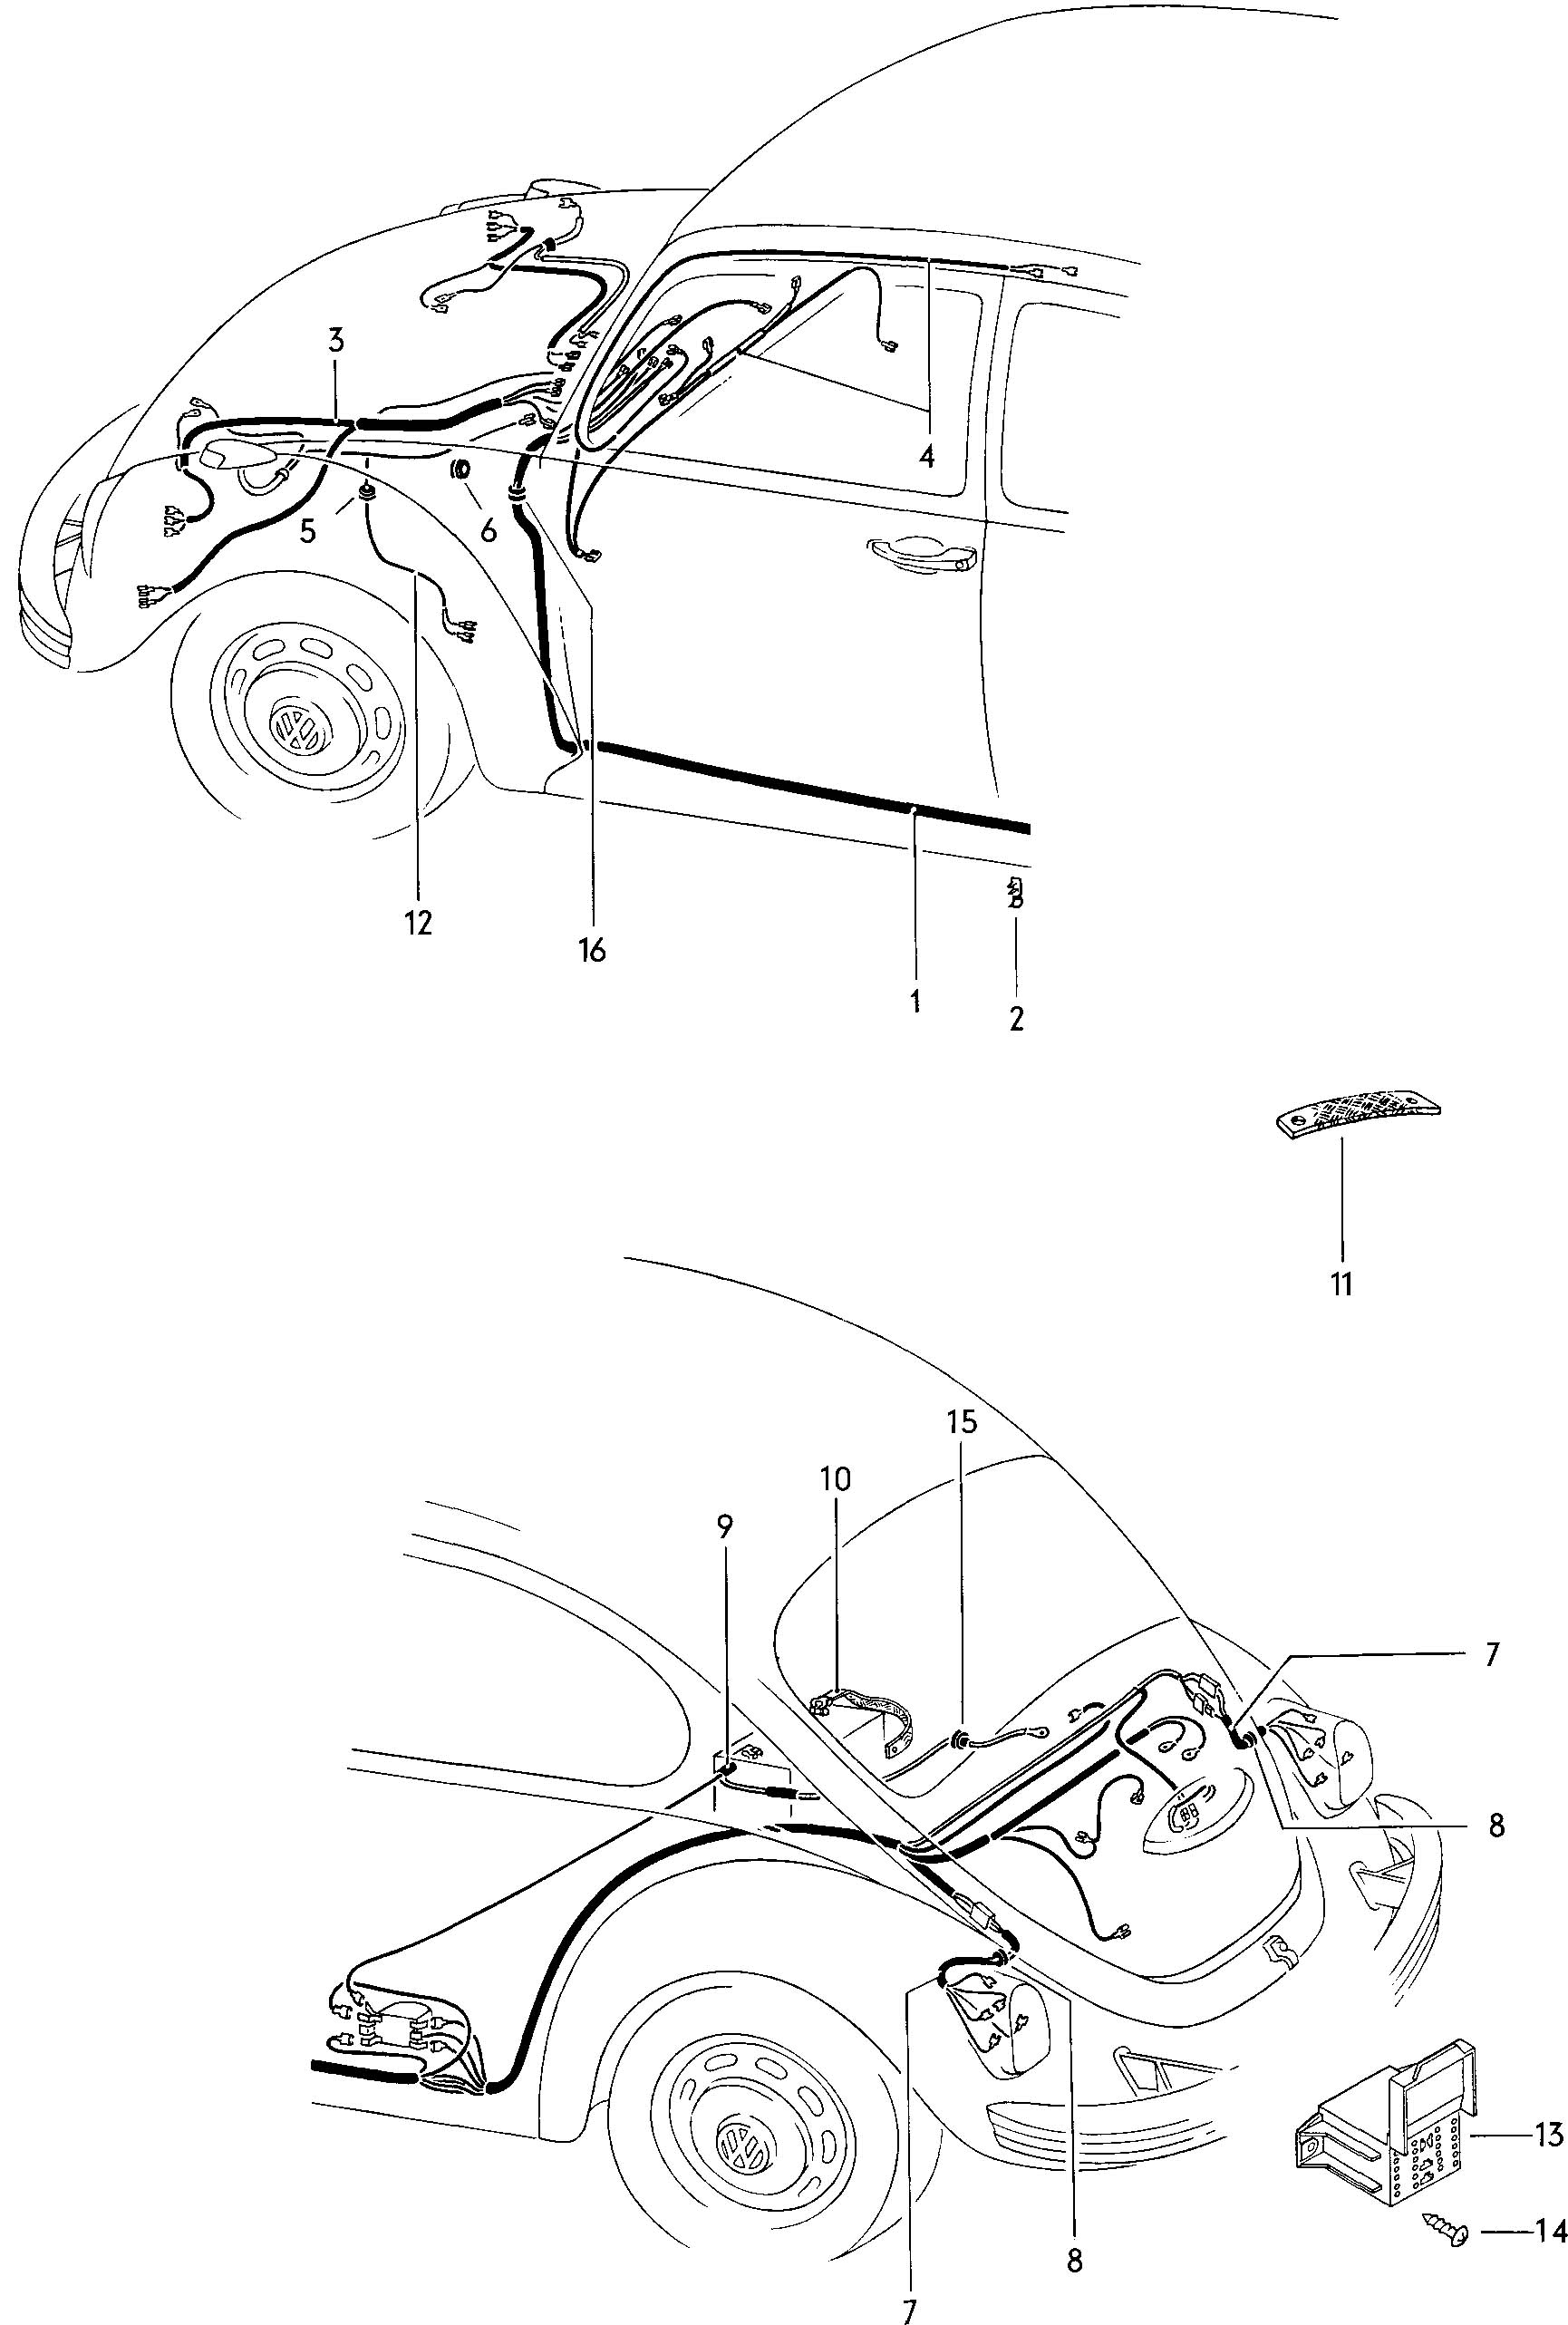 1967 Vw Bug Tail Light Wiring Diagram. Diagram. Auto